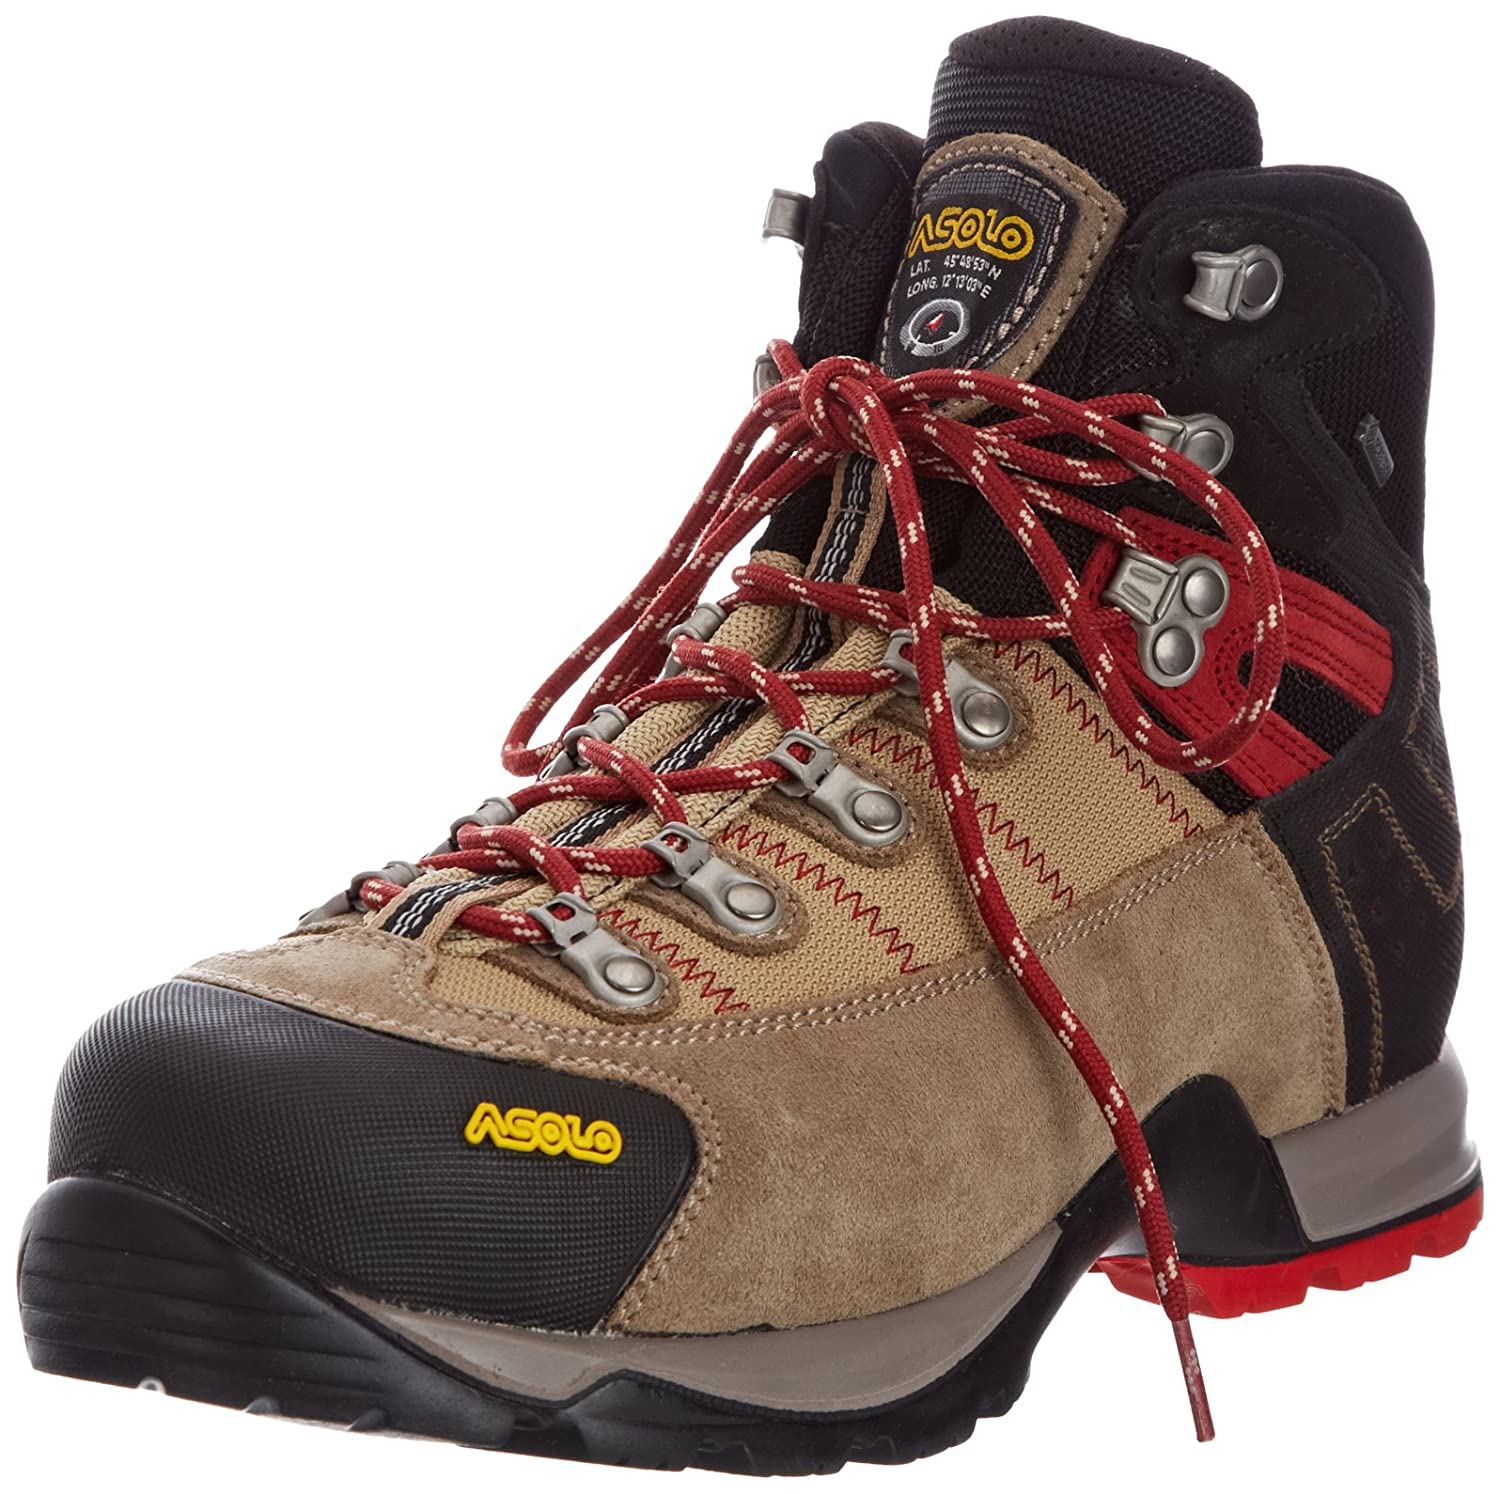 0M3400_508 Asolo Men's Fugitive GTX Hiking Boots - Wool/Black